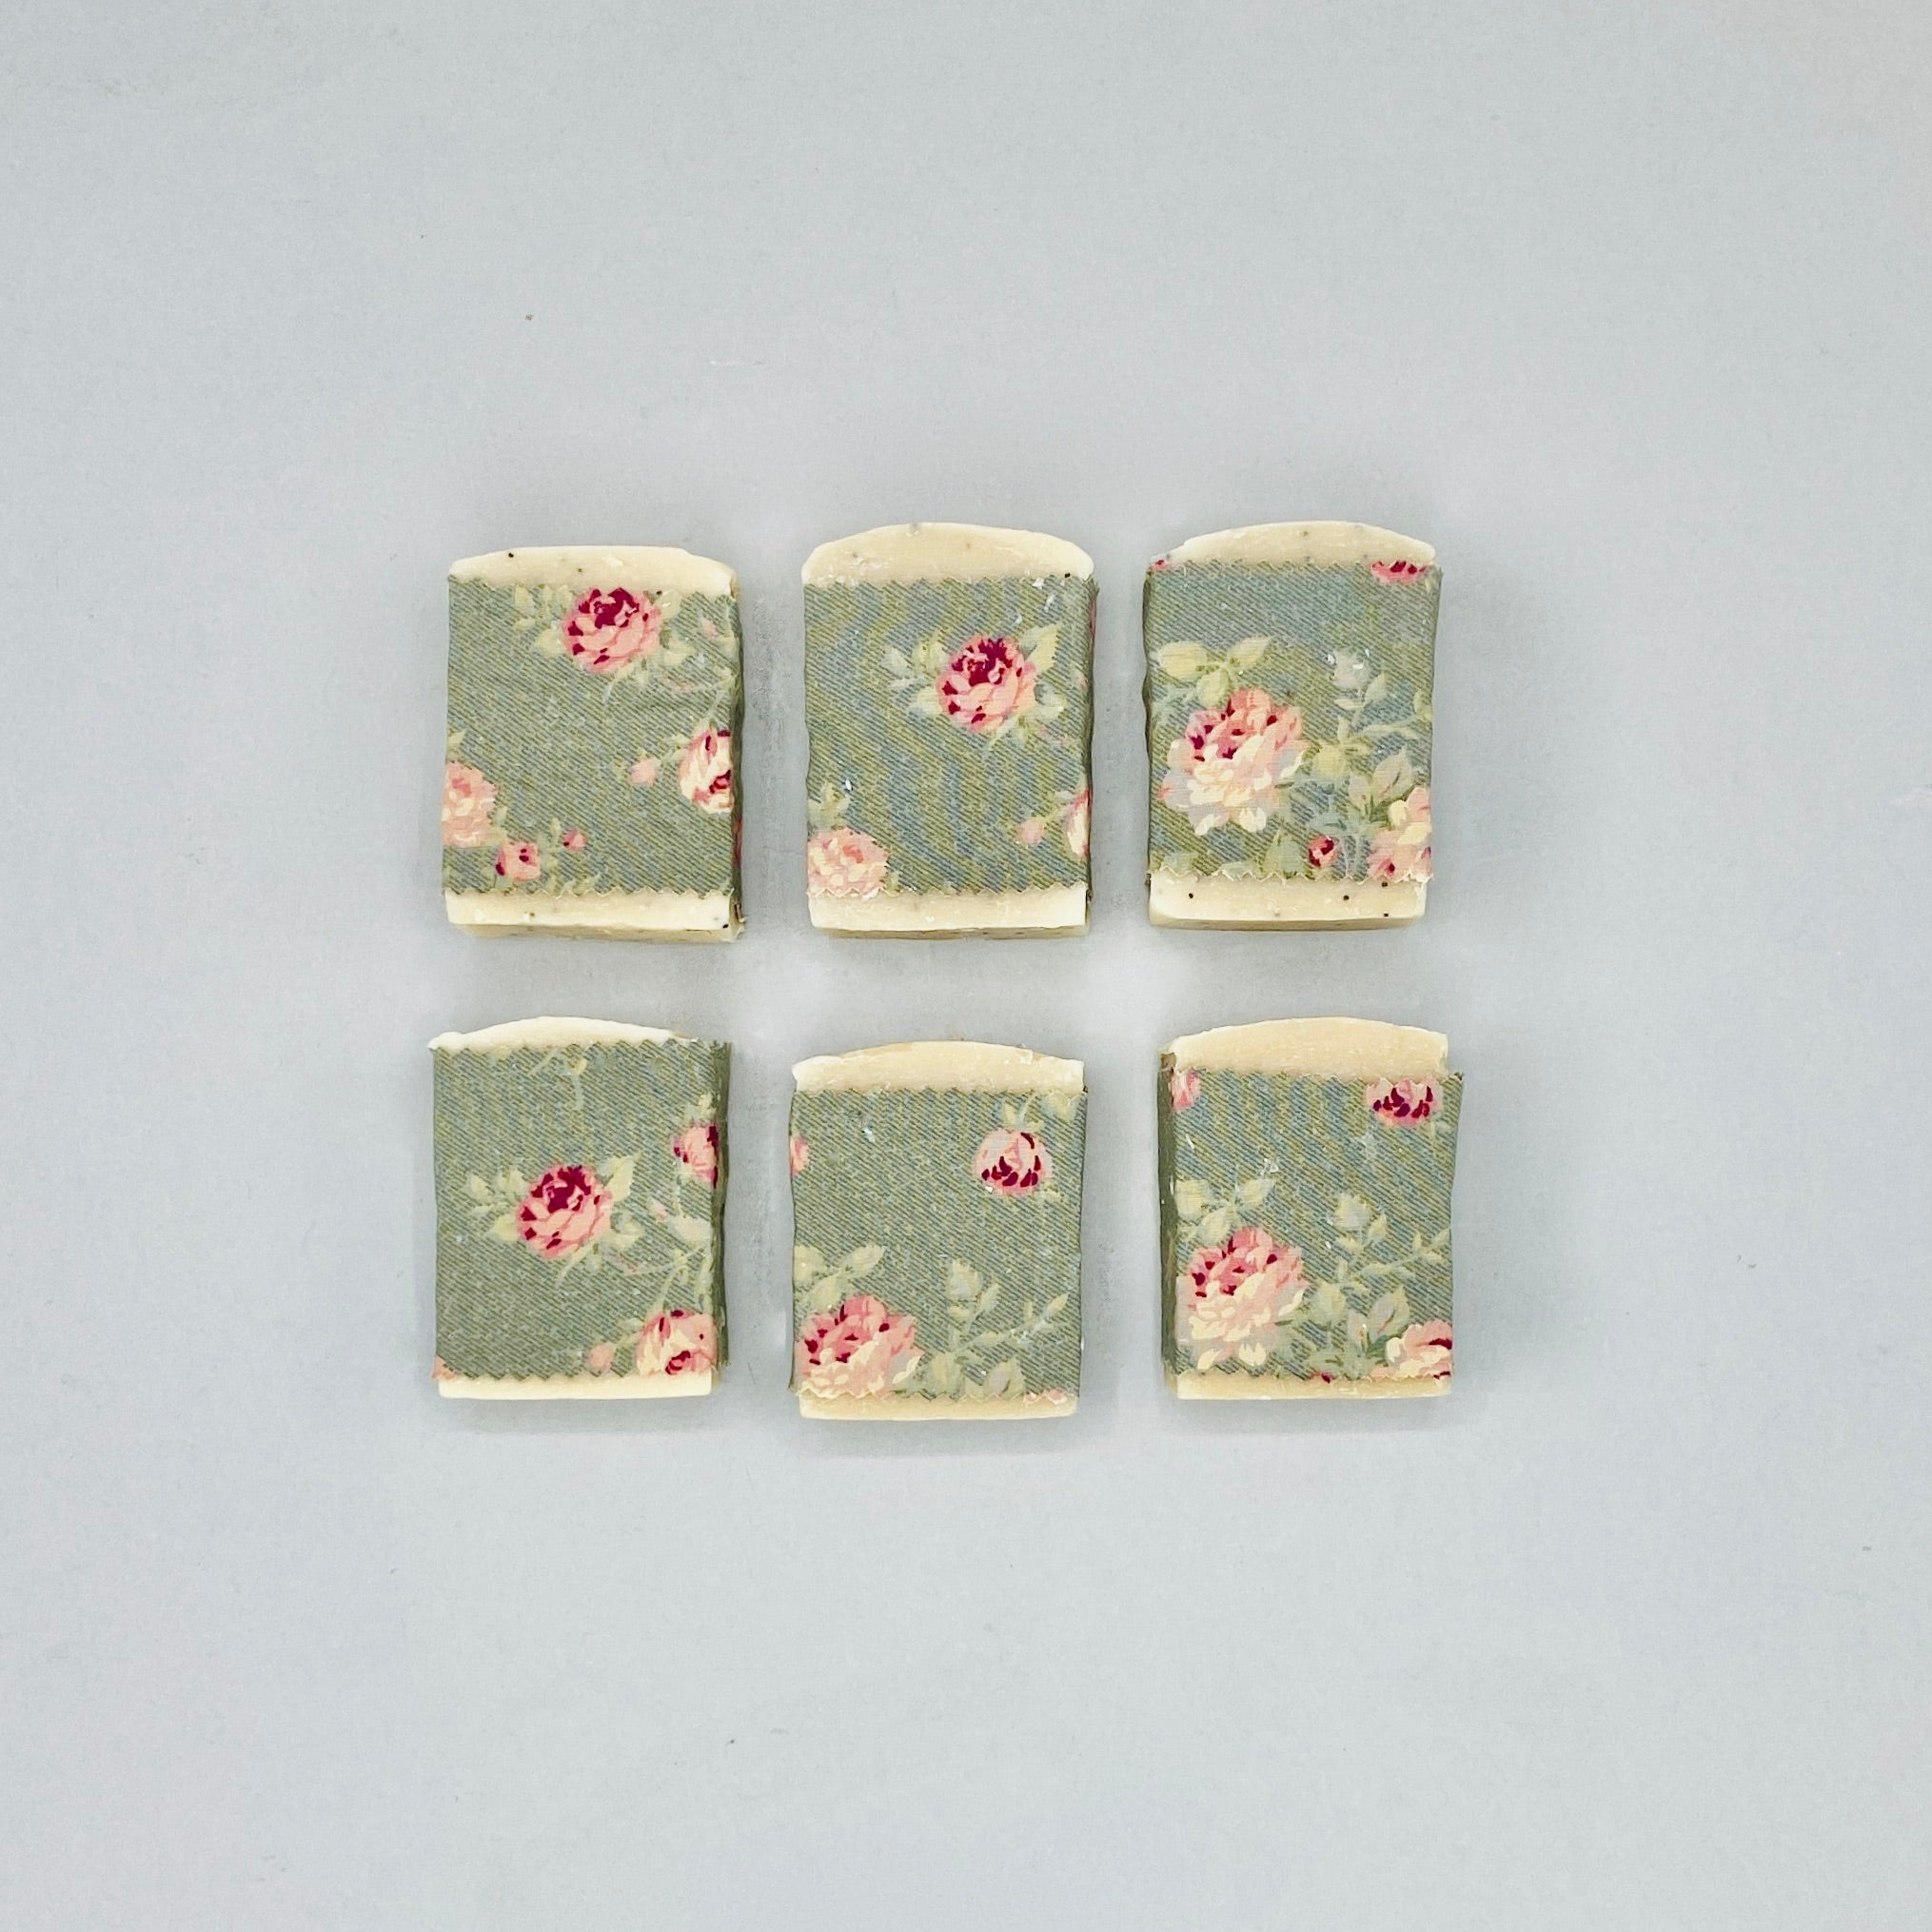 Handmade Soap - Lavender, Lavender and Rosemary and Exfoliating - Gardeners